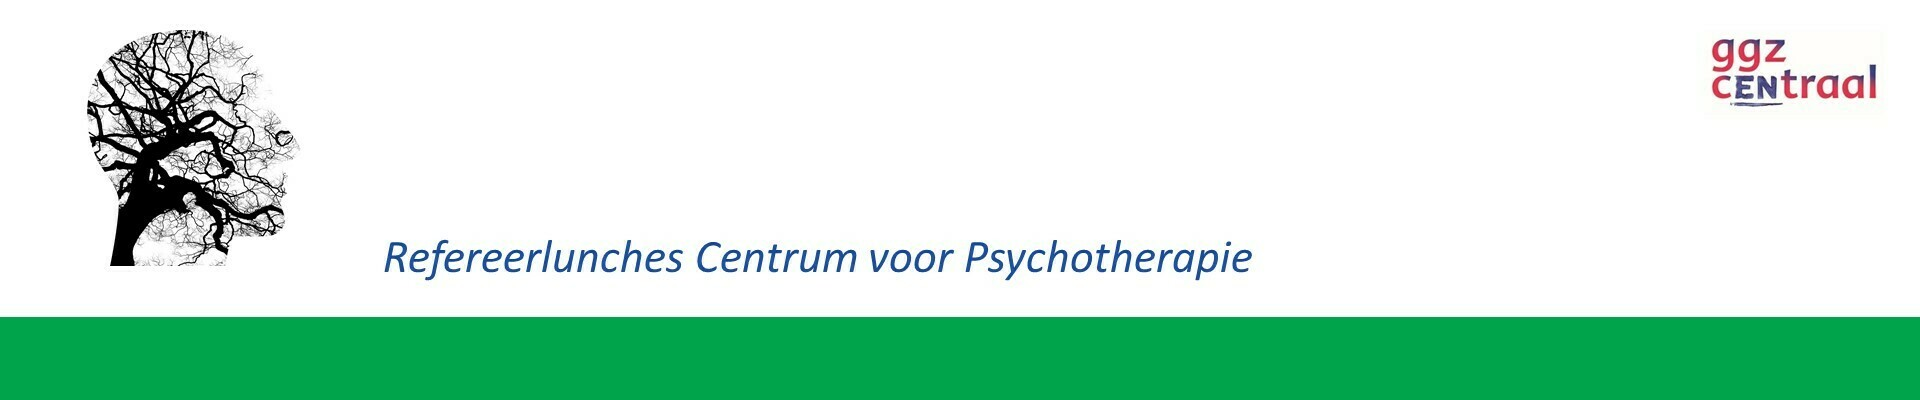 Refereerlunch Centrum voor Psychotherapie 13 januari